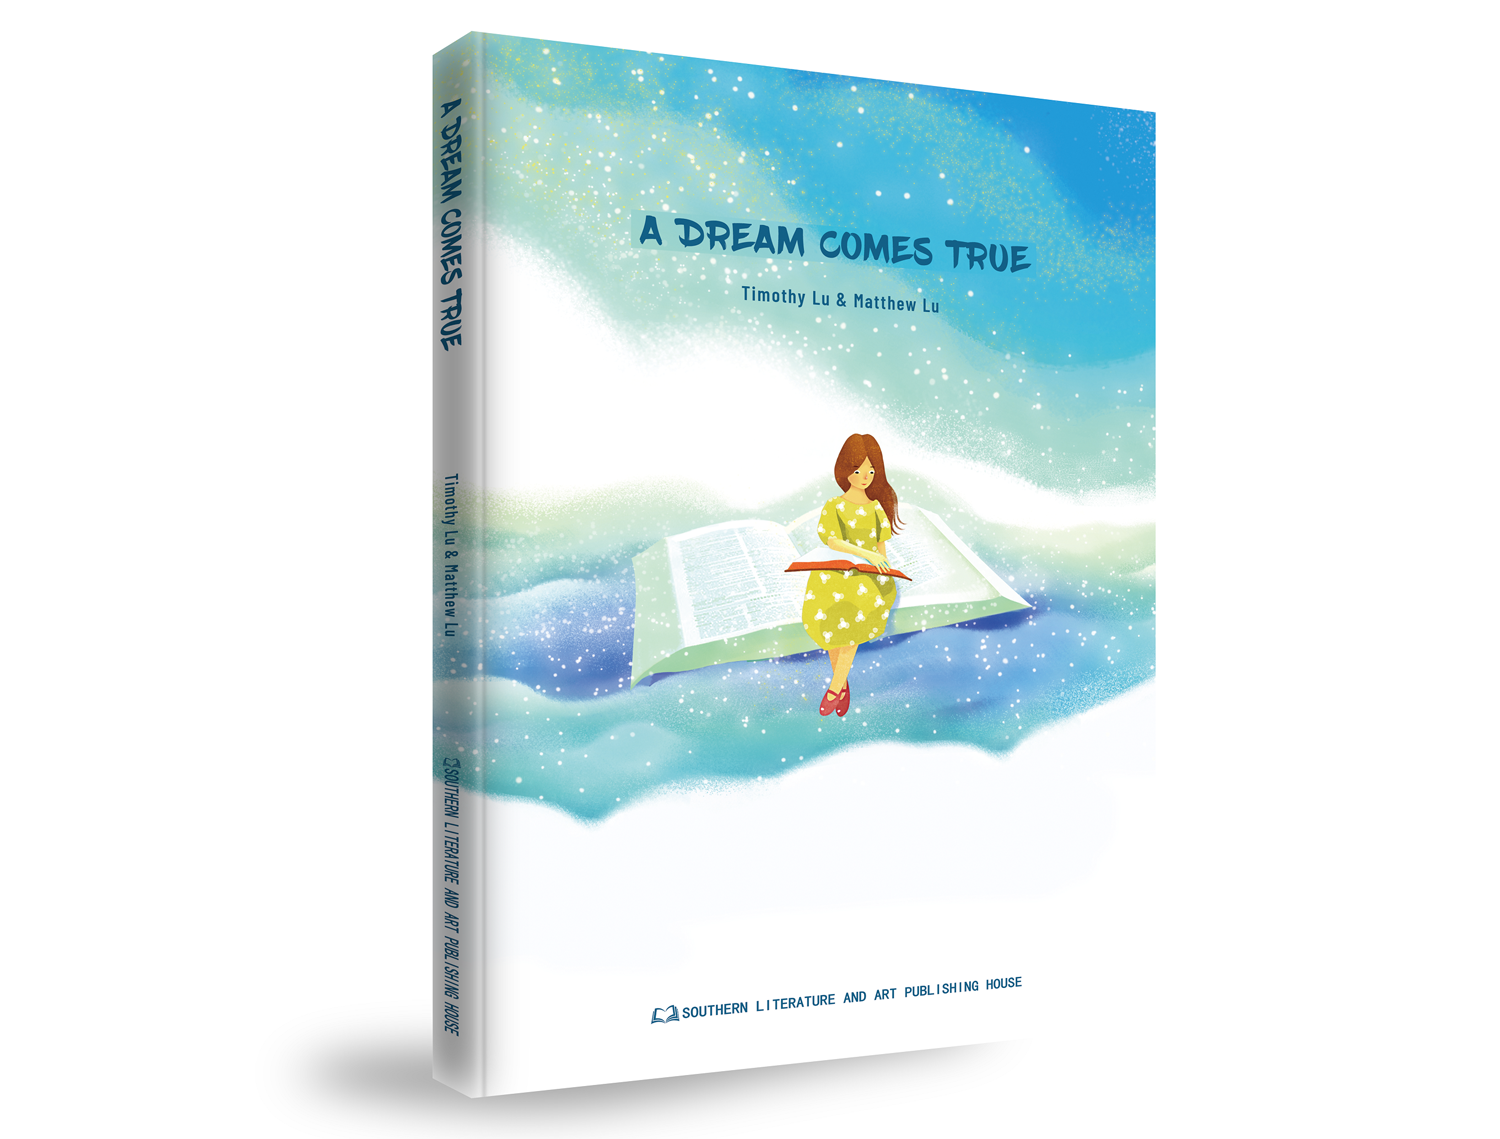 A Dream Comes True/Timothy Lu 等著